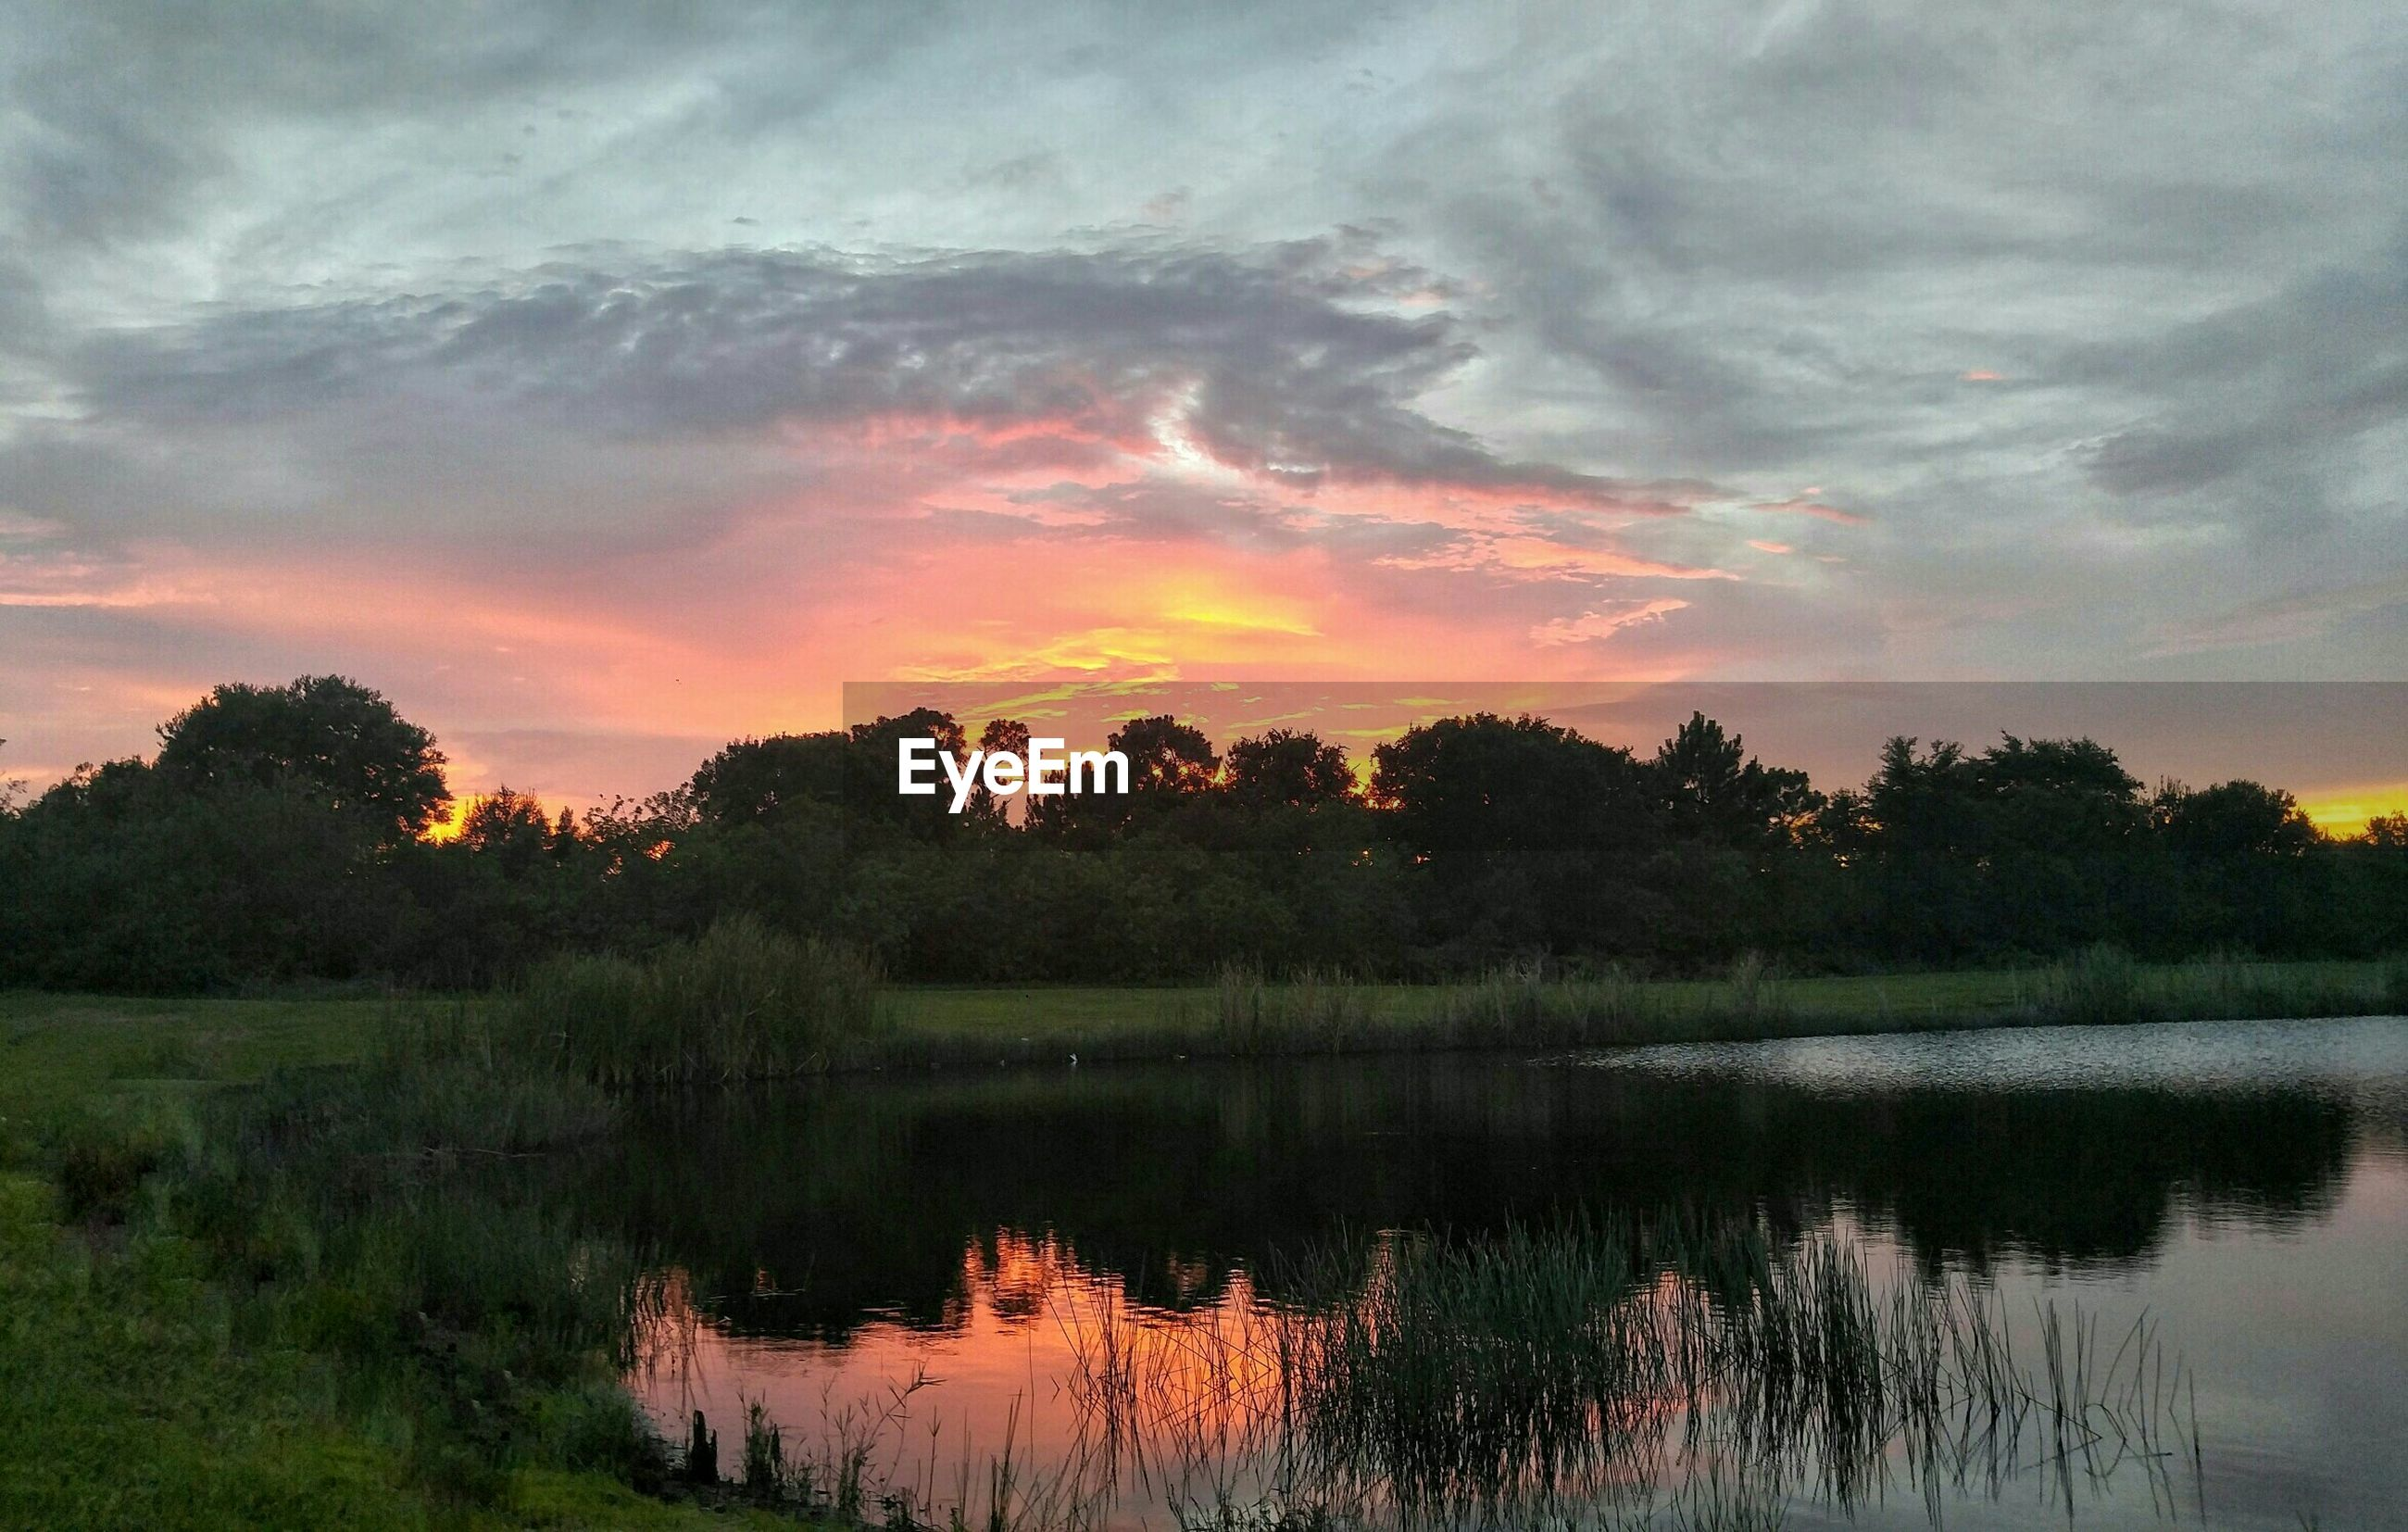 sunset, water, reflection, tree, lake, tranquil scene, tranquility, sky, scenics, beauty in nature, nature, cloud - sky, orange color, idyllic, cloud, non-urban scene, growth, outdoors, cloudy, dramatic sky, no people, calm, non urban scene, landscape, majestic, standing water, plant, grass, remote